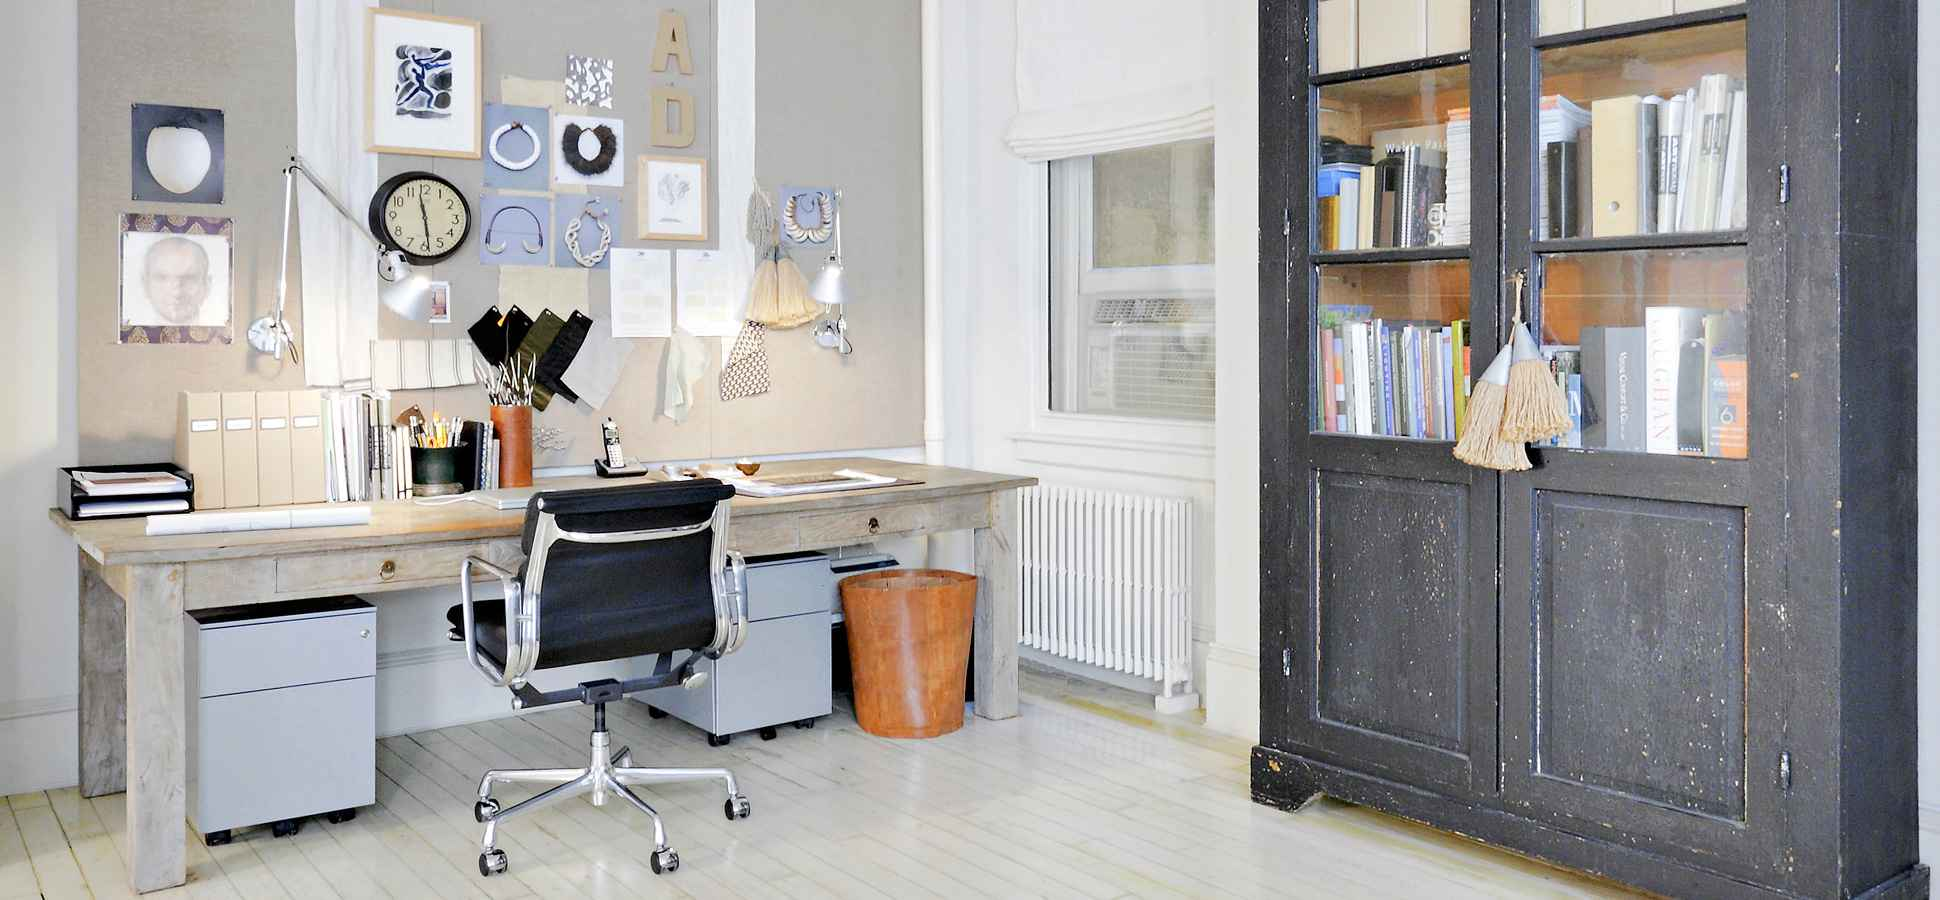 7 Steps to Persuade Your Boss to Let You Work From Home   Inc.com